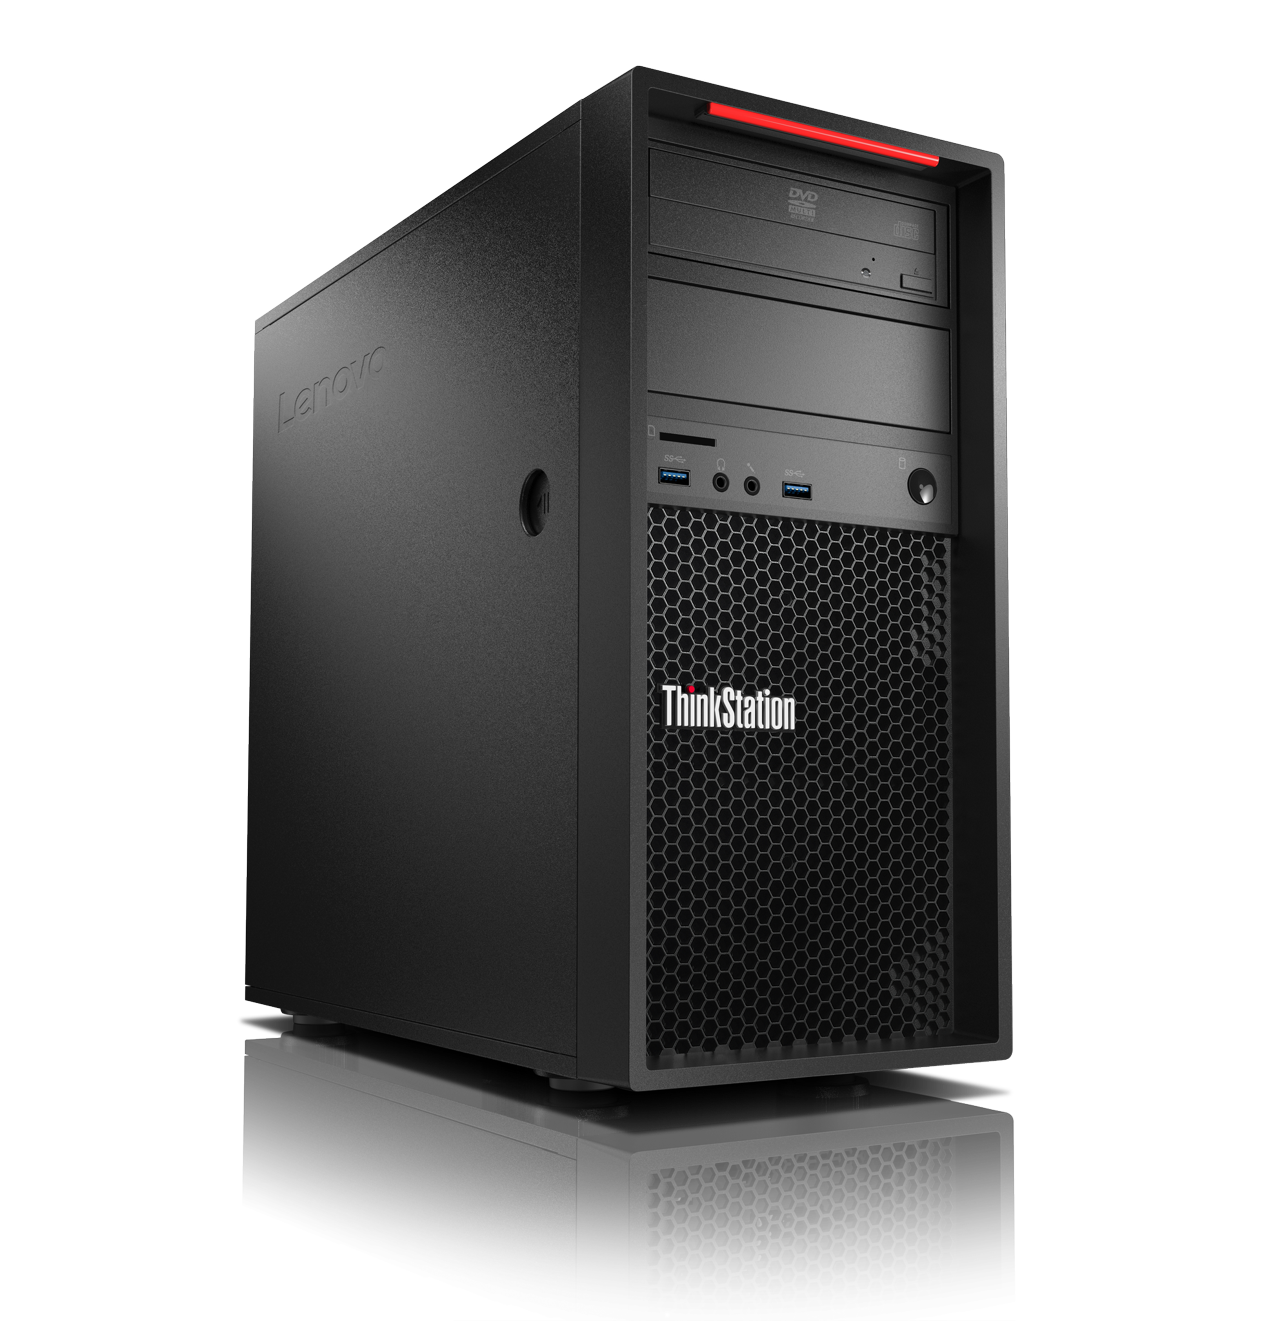 Lenovo ThinkStation P320 Tower (30BH000HXS)